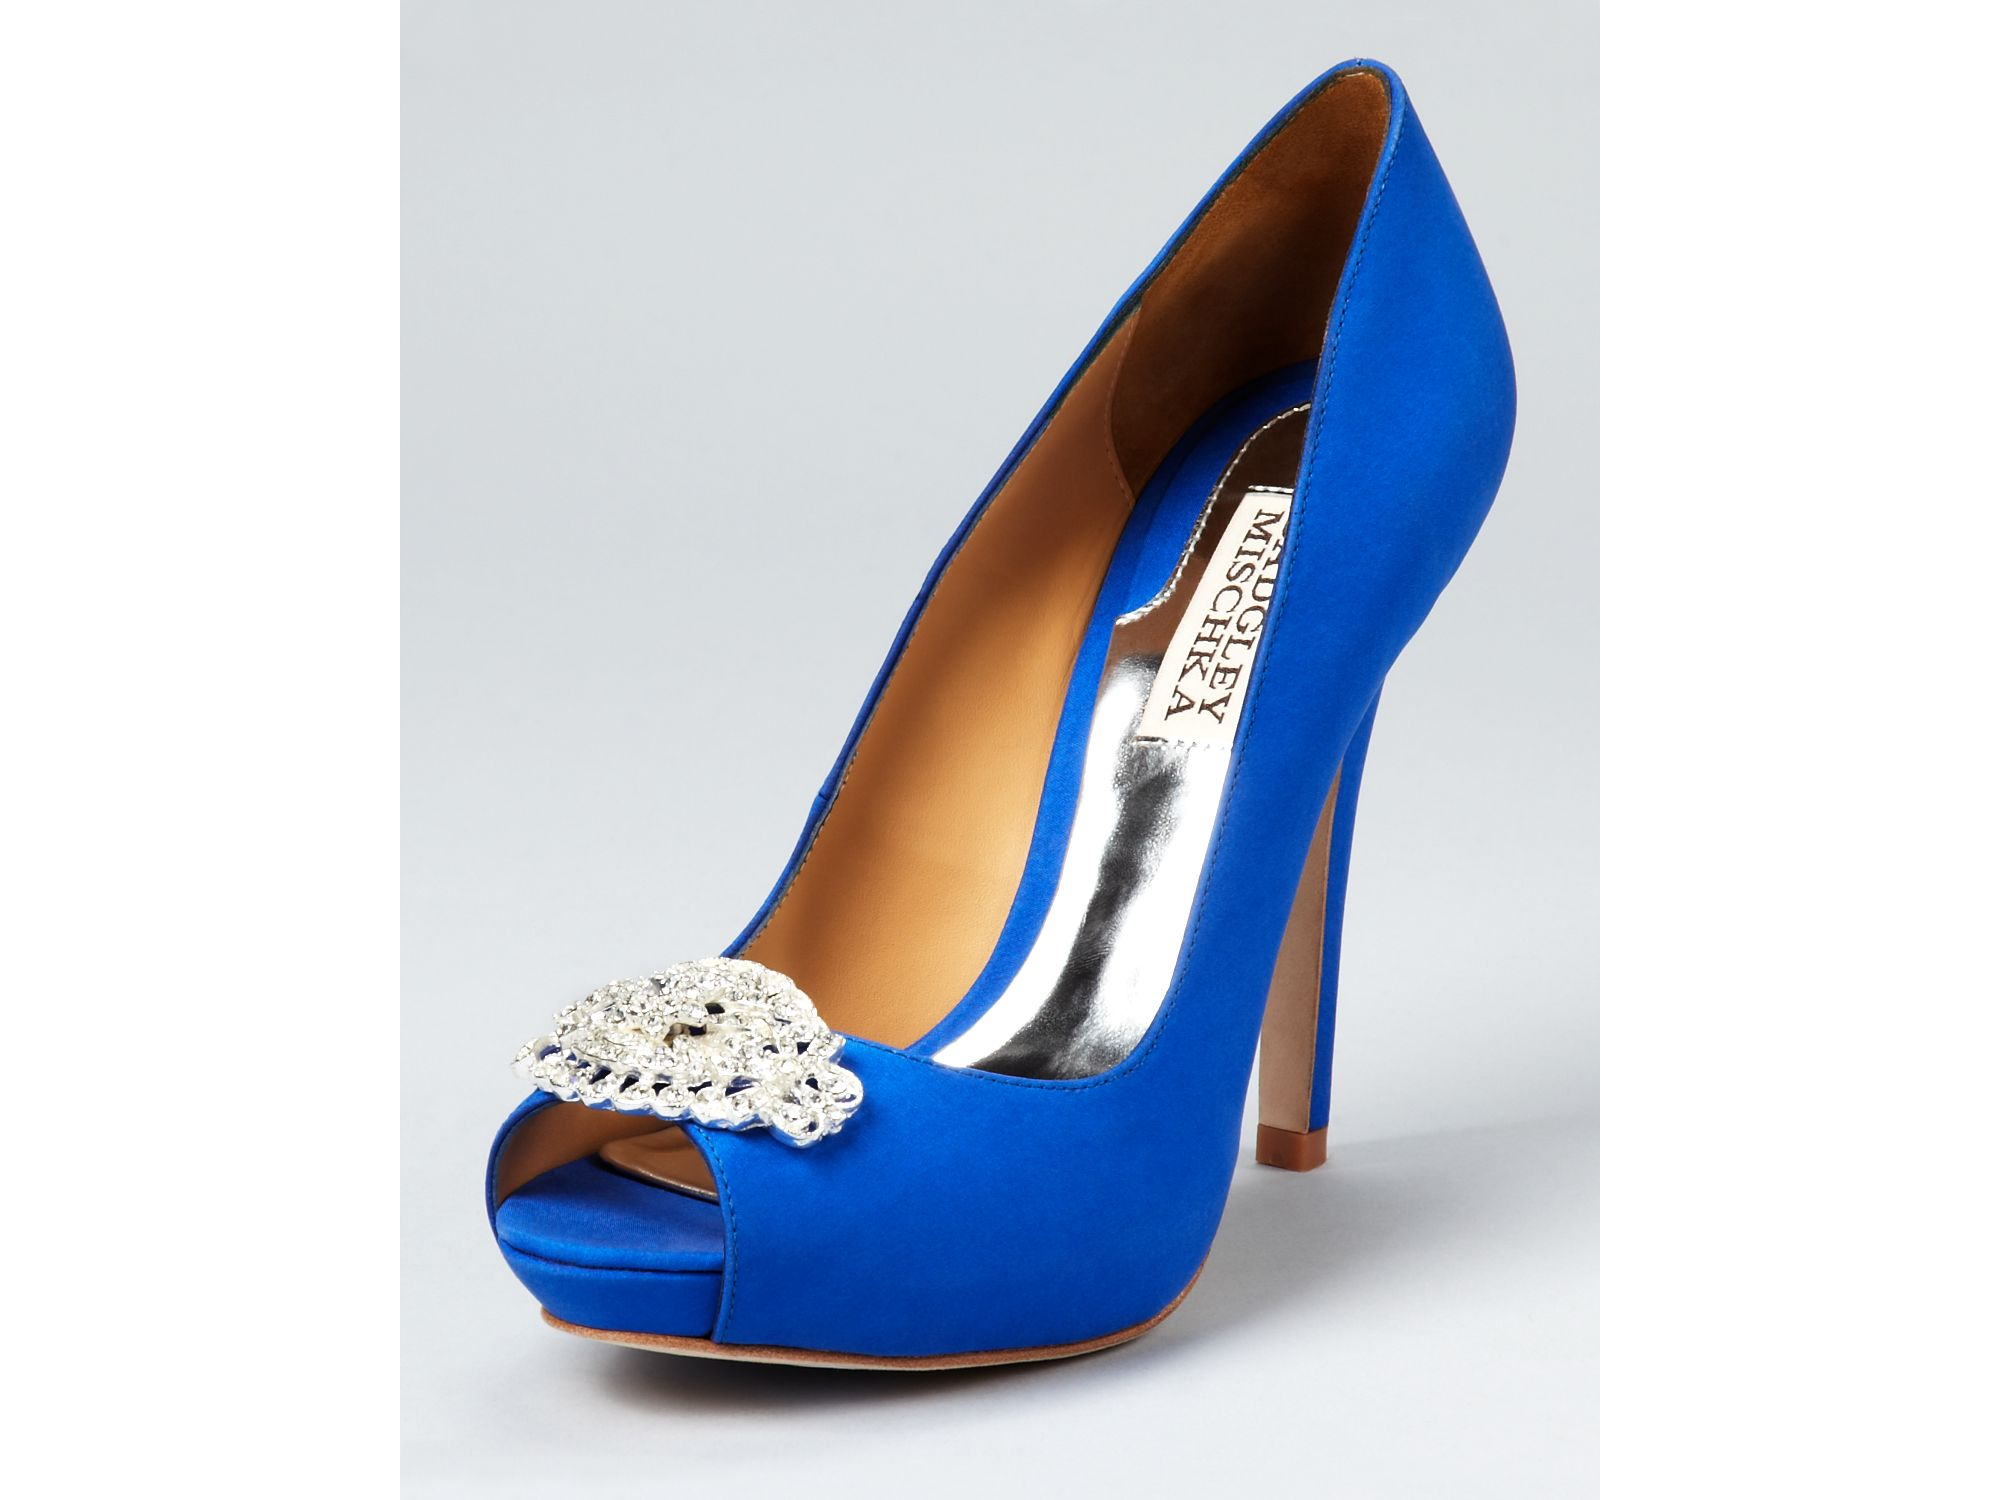 Lyst Badgley Mischka Pumps Goodie Peep Toe In Blue